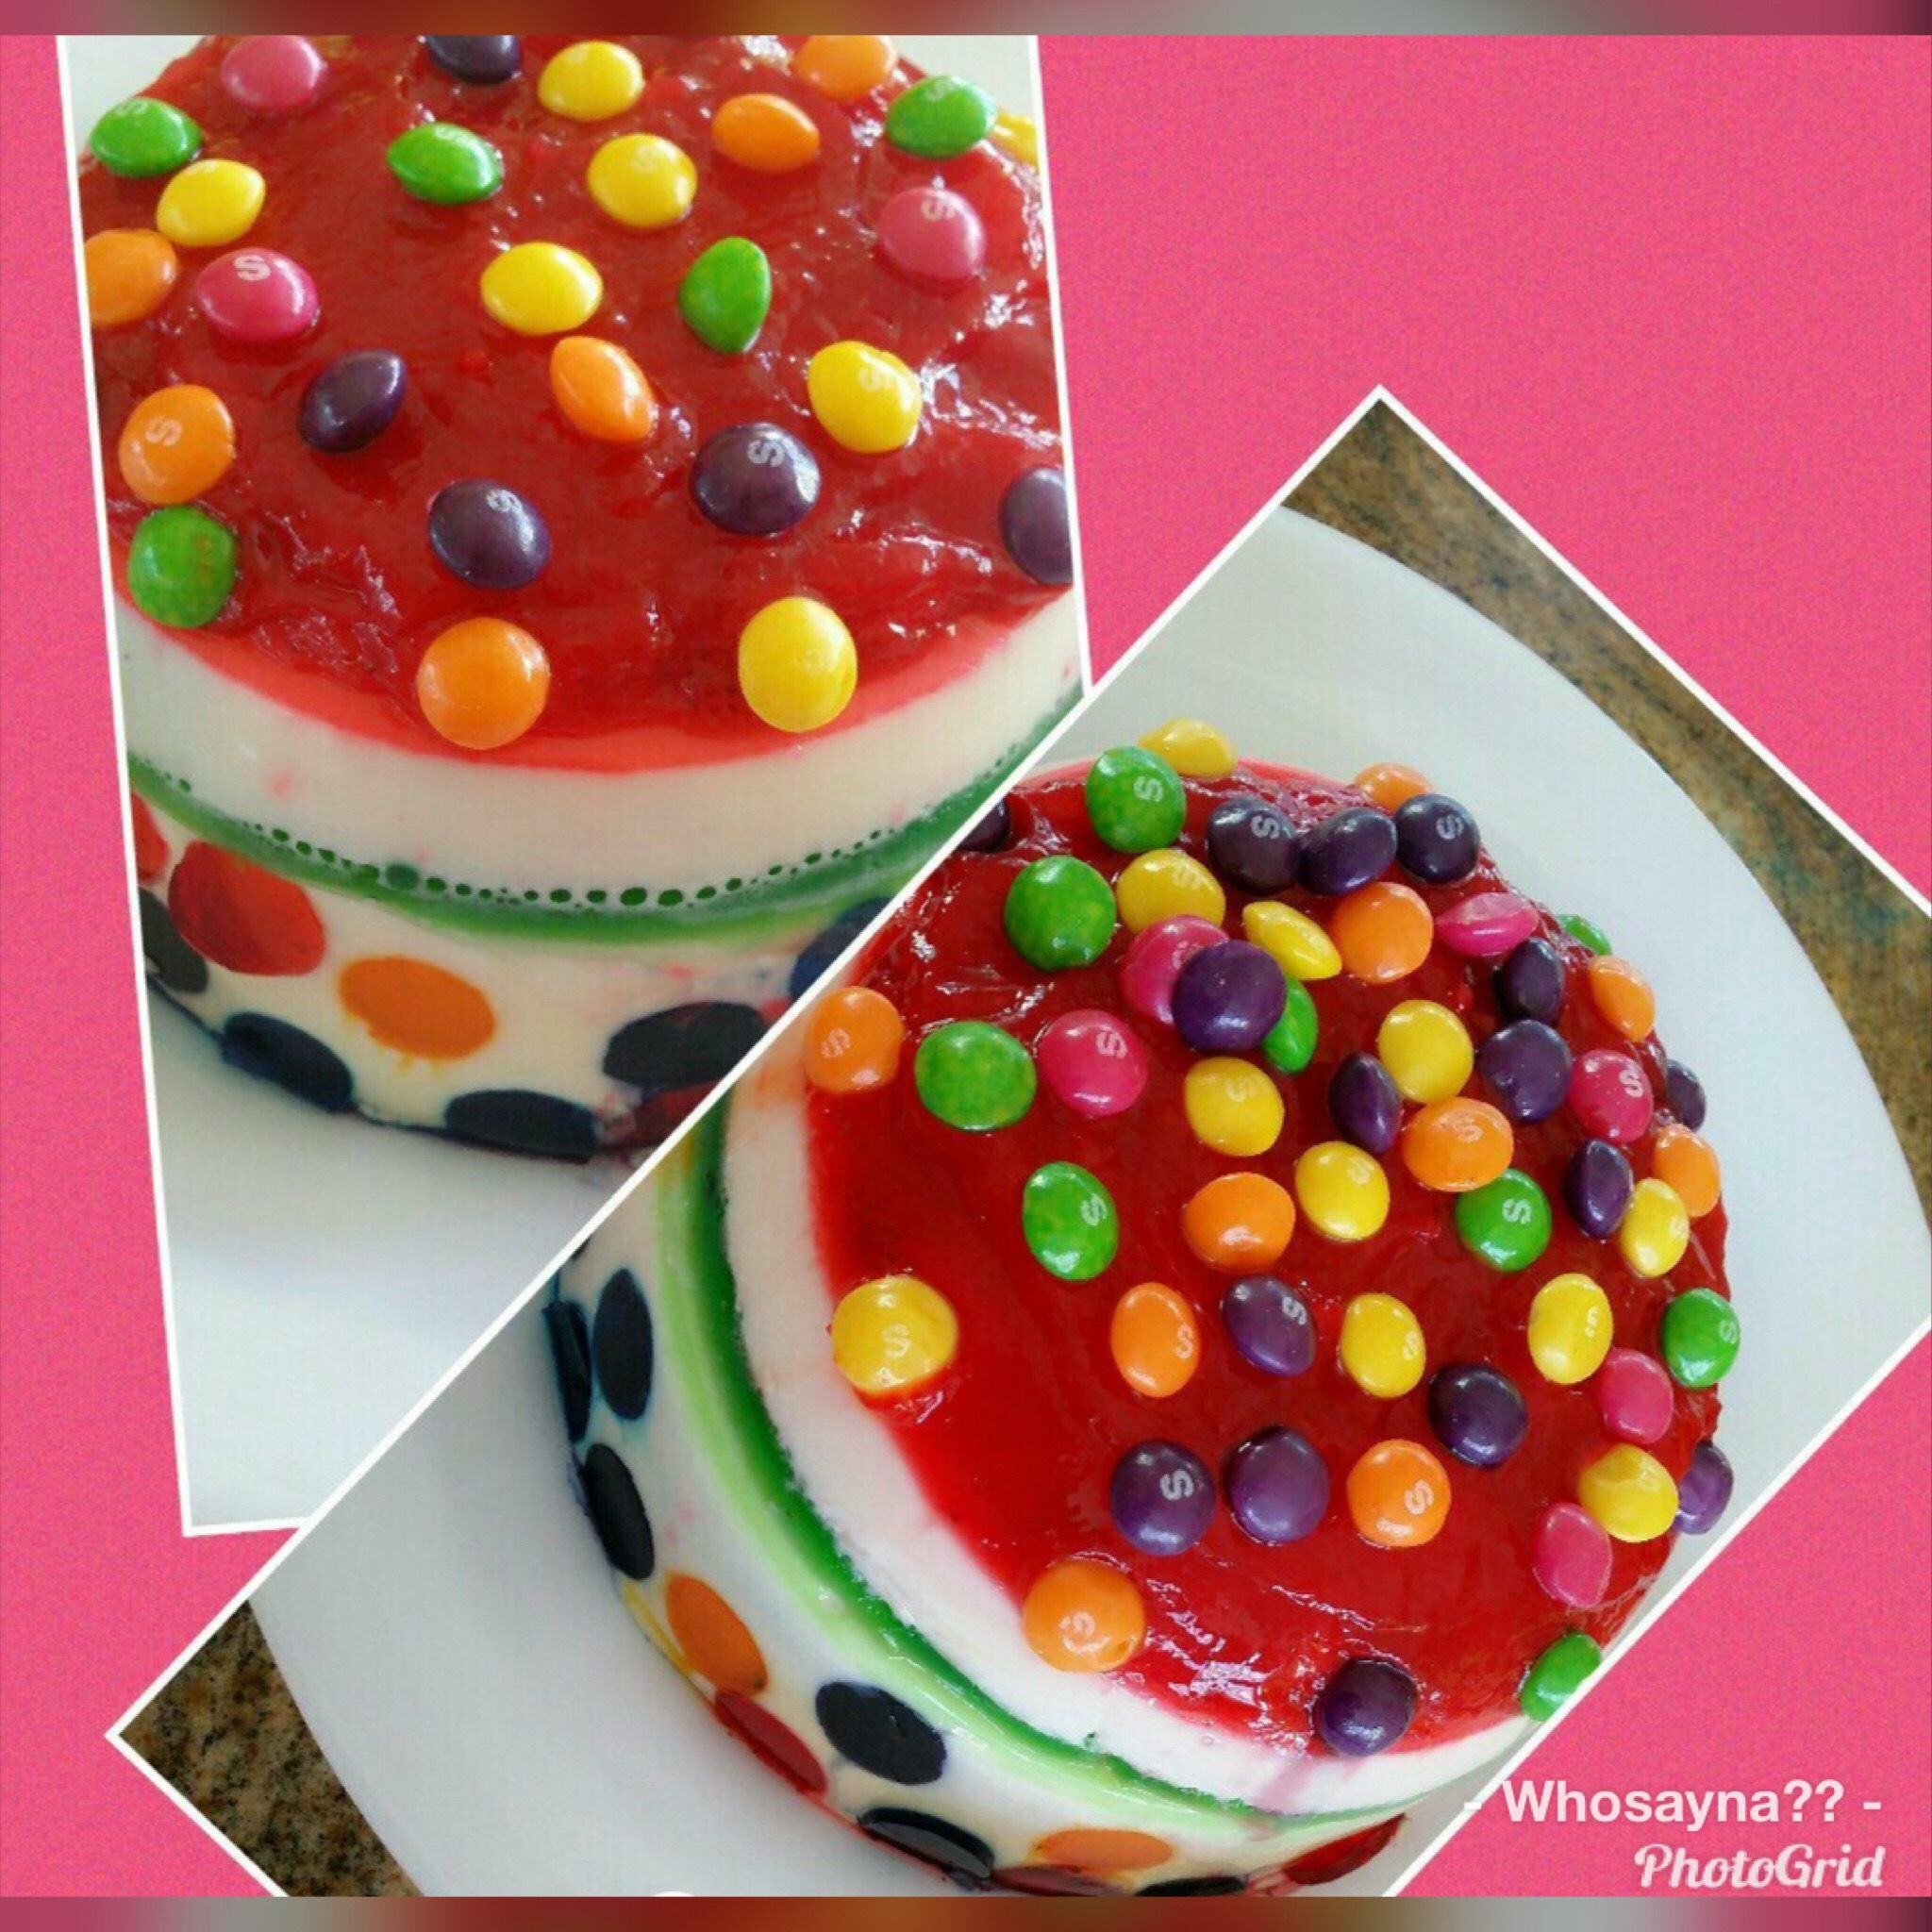 Whosayna's Skittles Fruitty Pudding